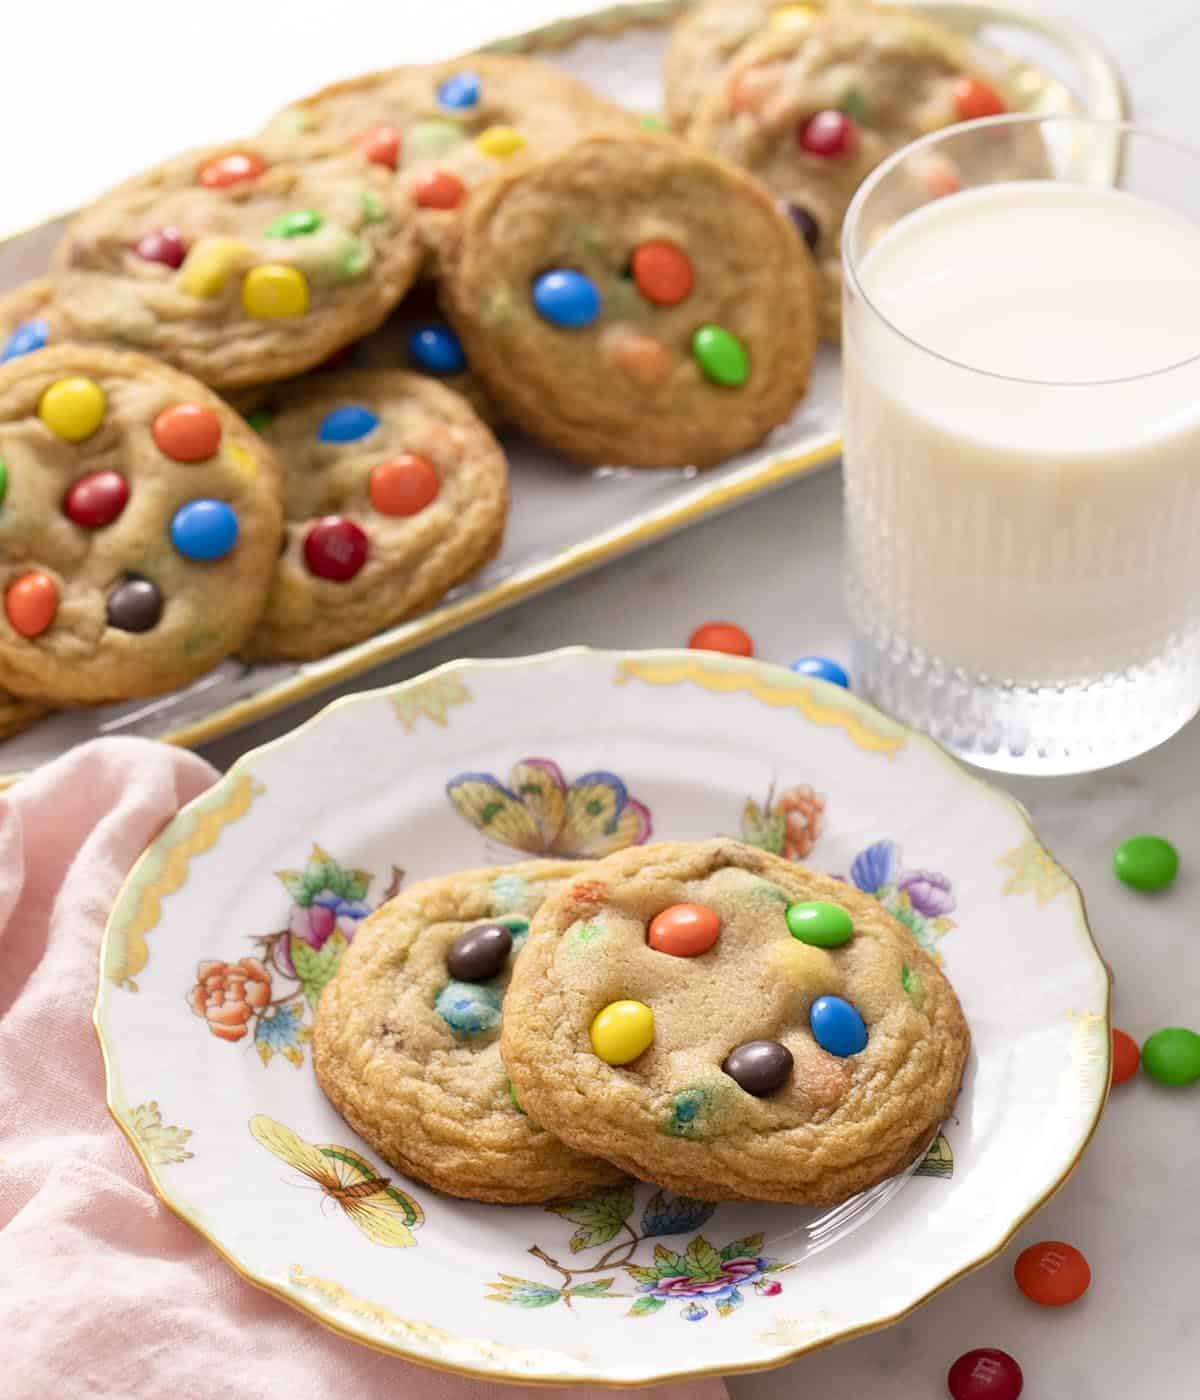 Two M&M cookies on a plate next to a glass of milk.